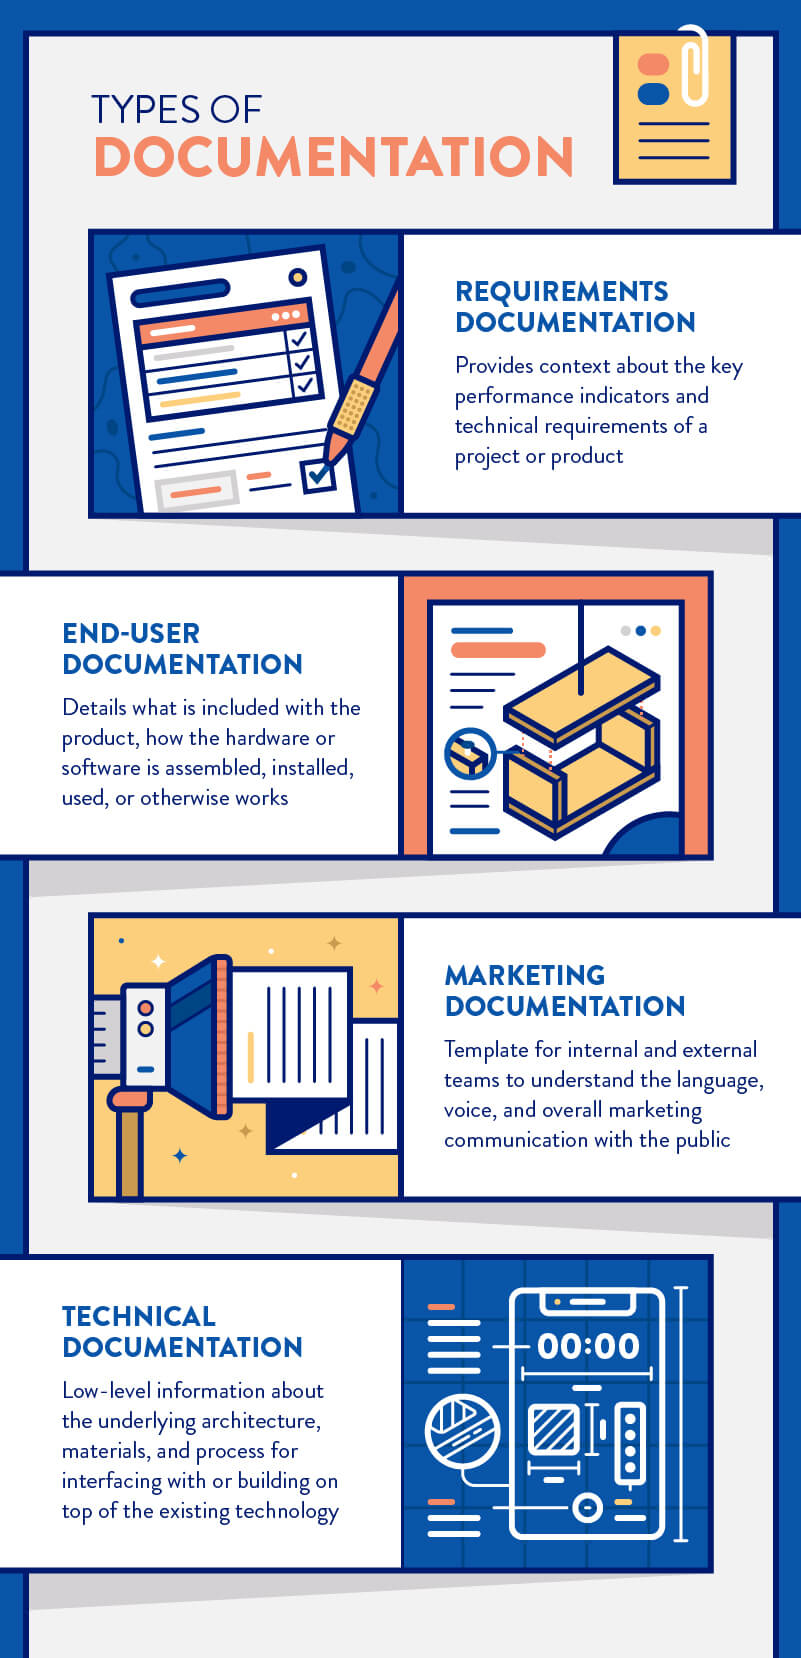 types of technical documentation including end-user, marketing, requirements document